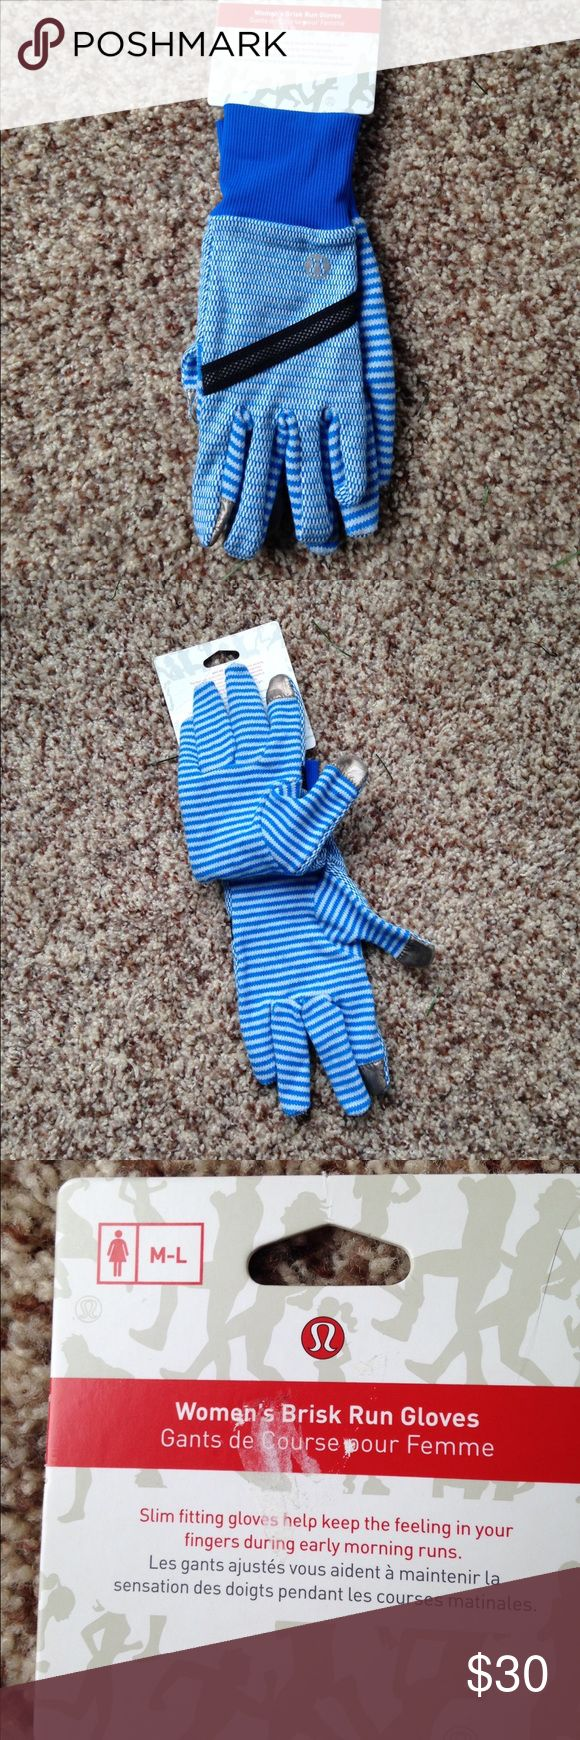 Lululemon Brisk Run Gloves Brand new with tags. Women's M/L. Pretty blue and white color.  Silver fiber panelled fingertips allow you to text while they are on. lululemon athletica Accessories Gloves & Mittens